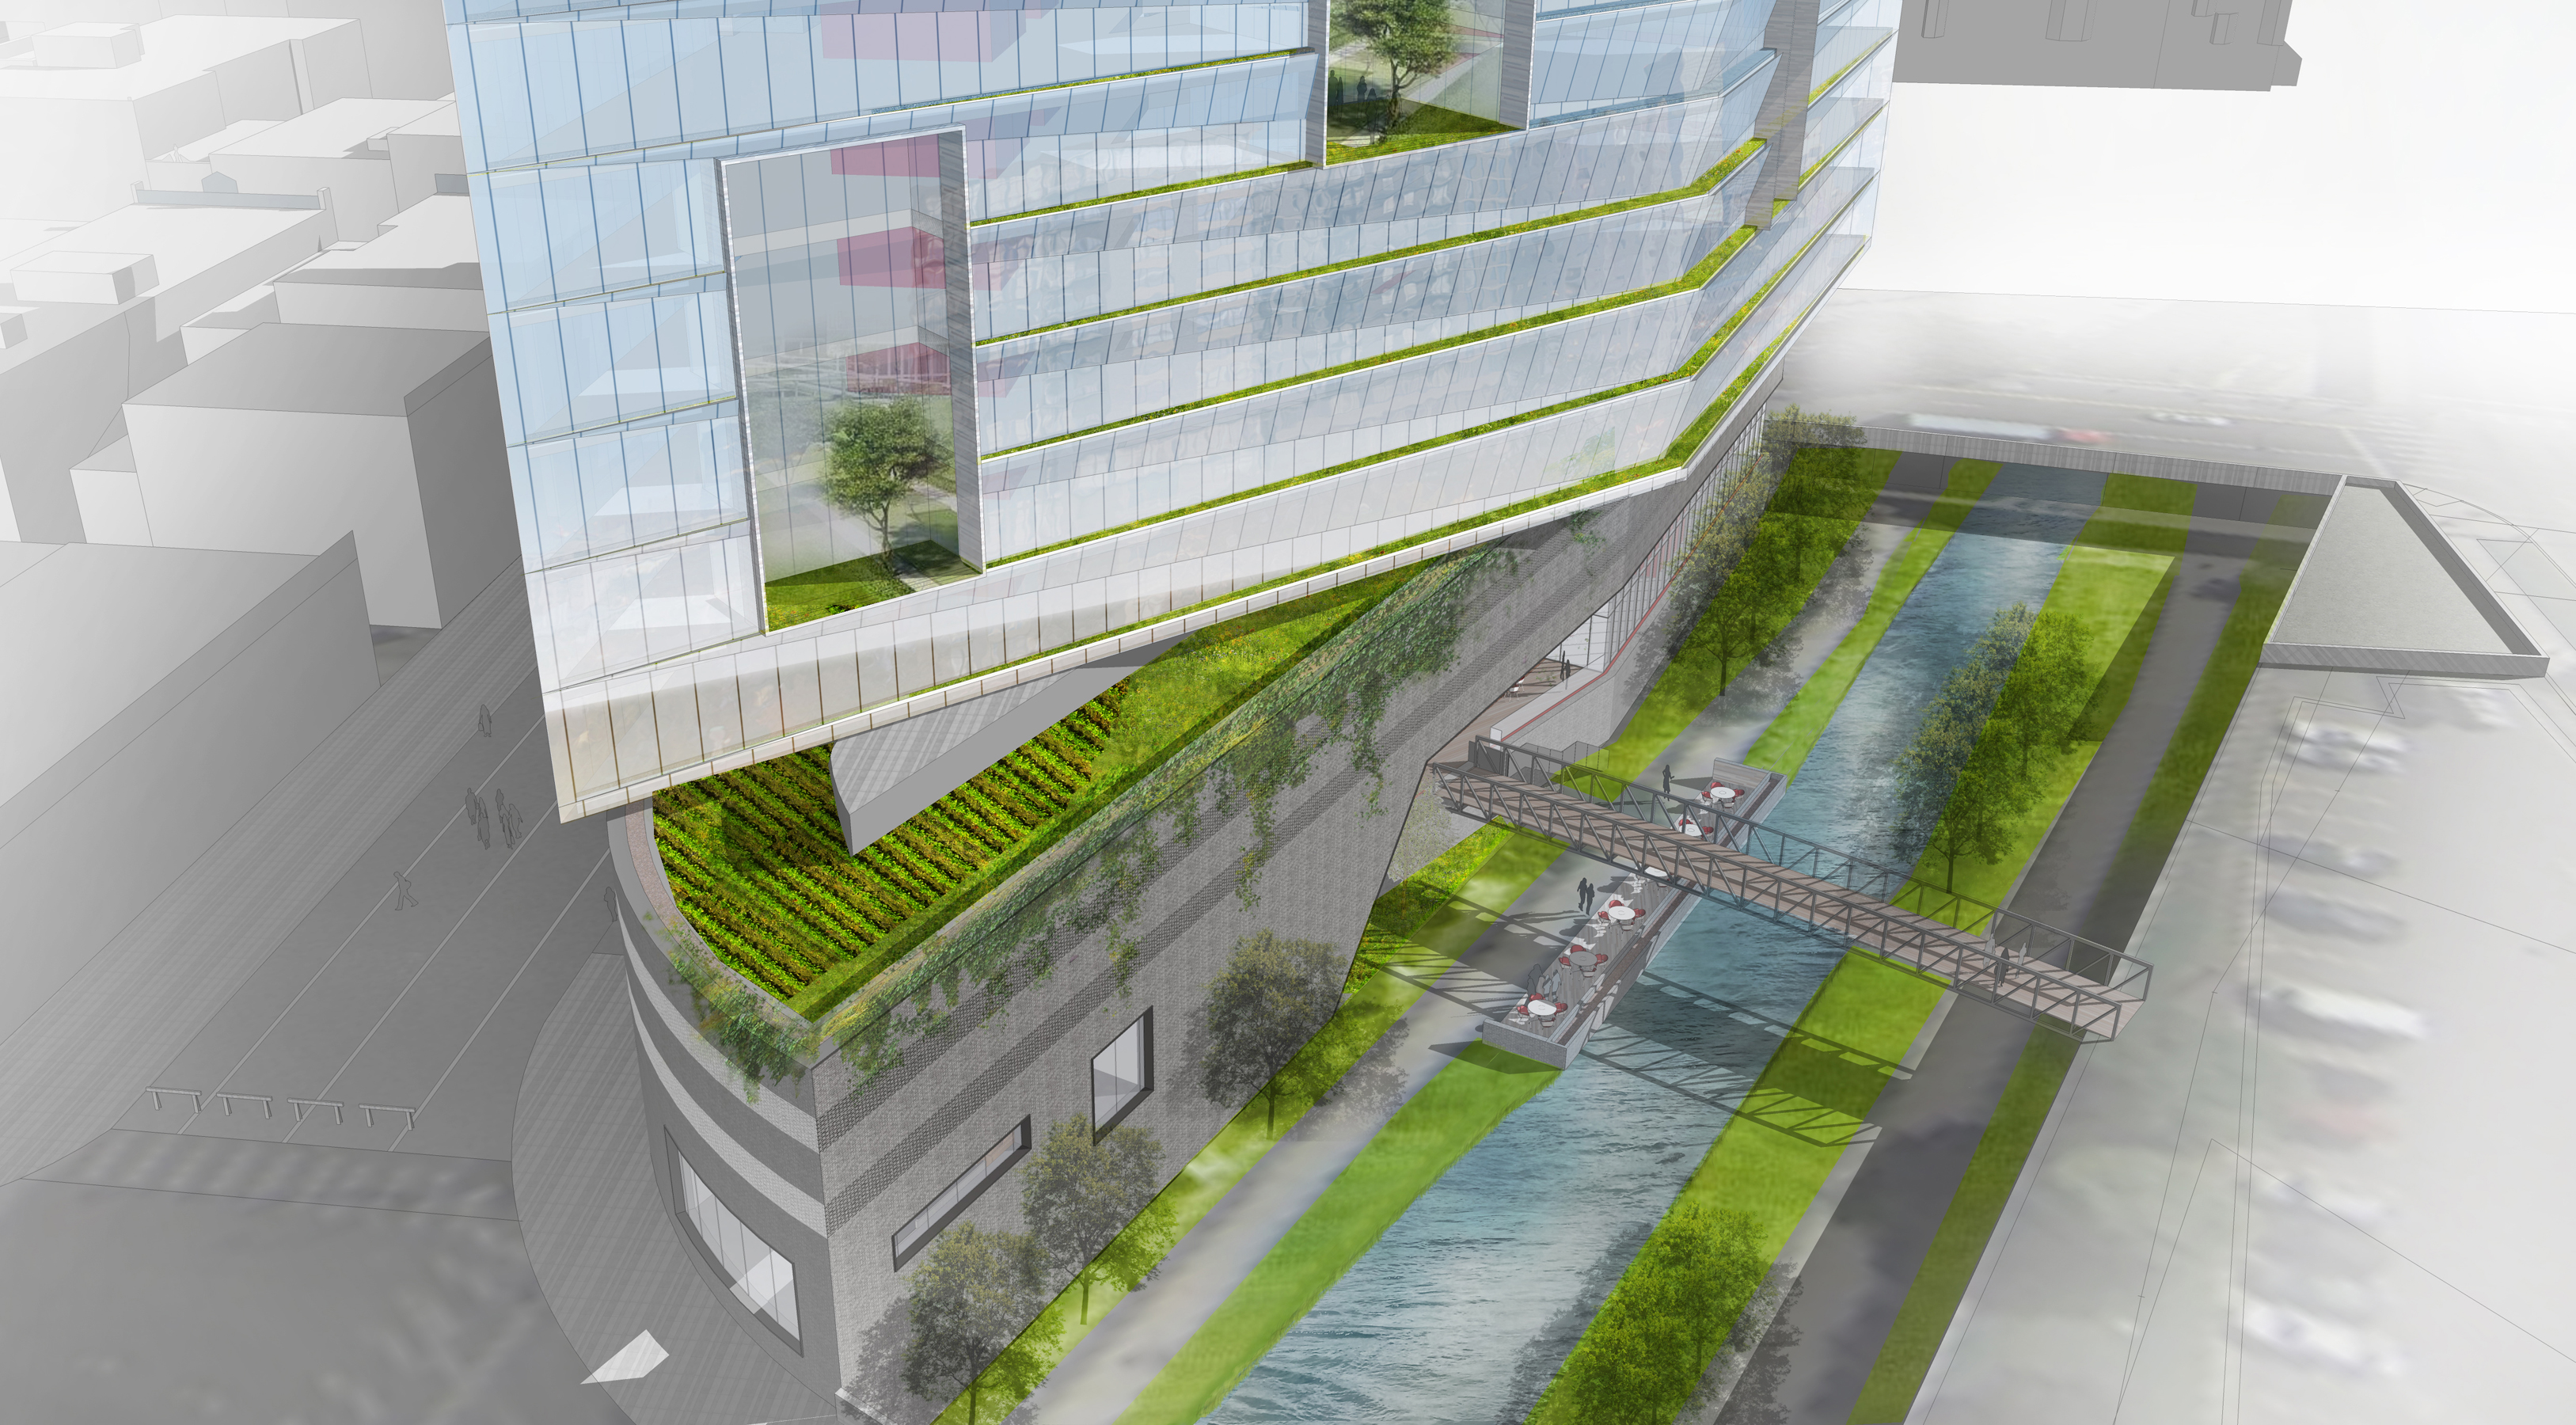 6 14th and Larimer staggered glass podium garden tower green 2 open studio architecture